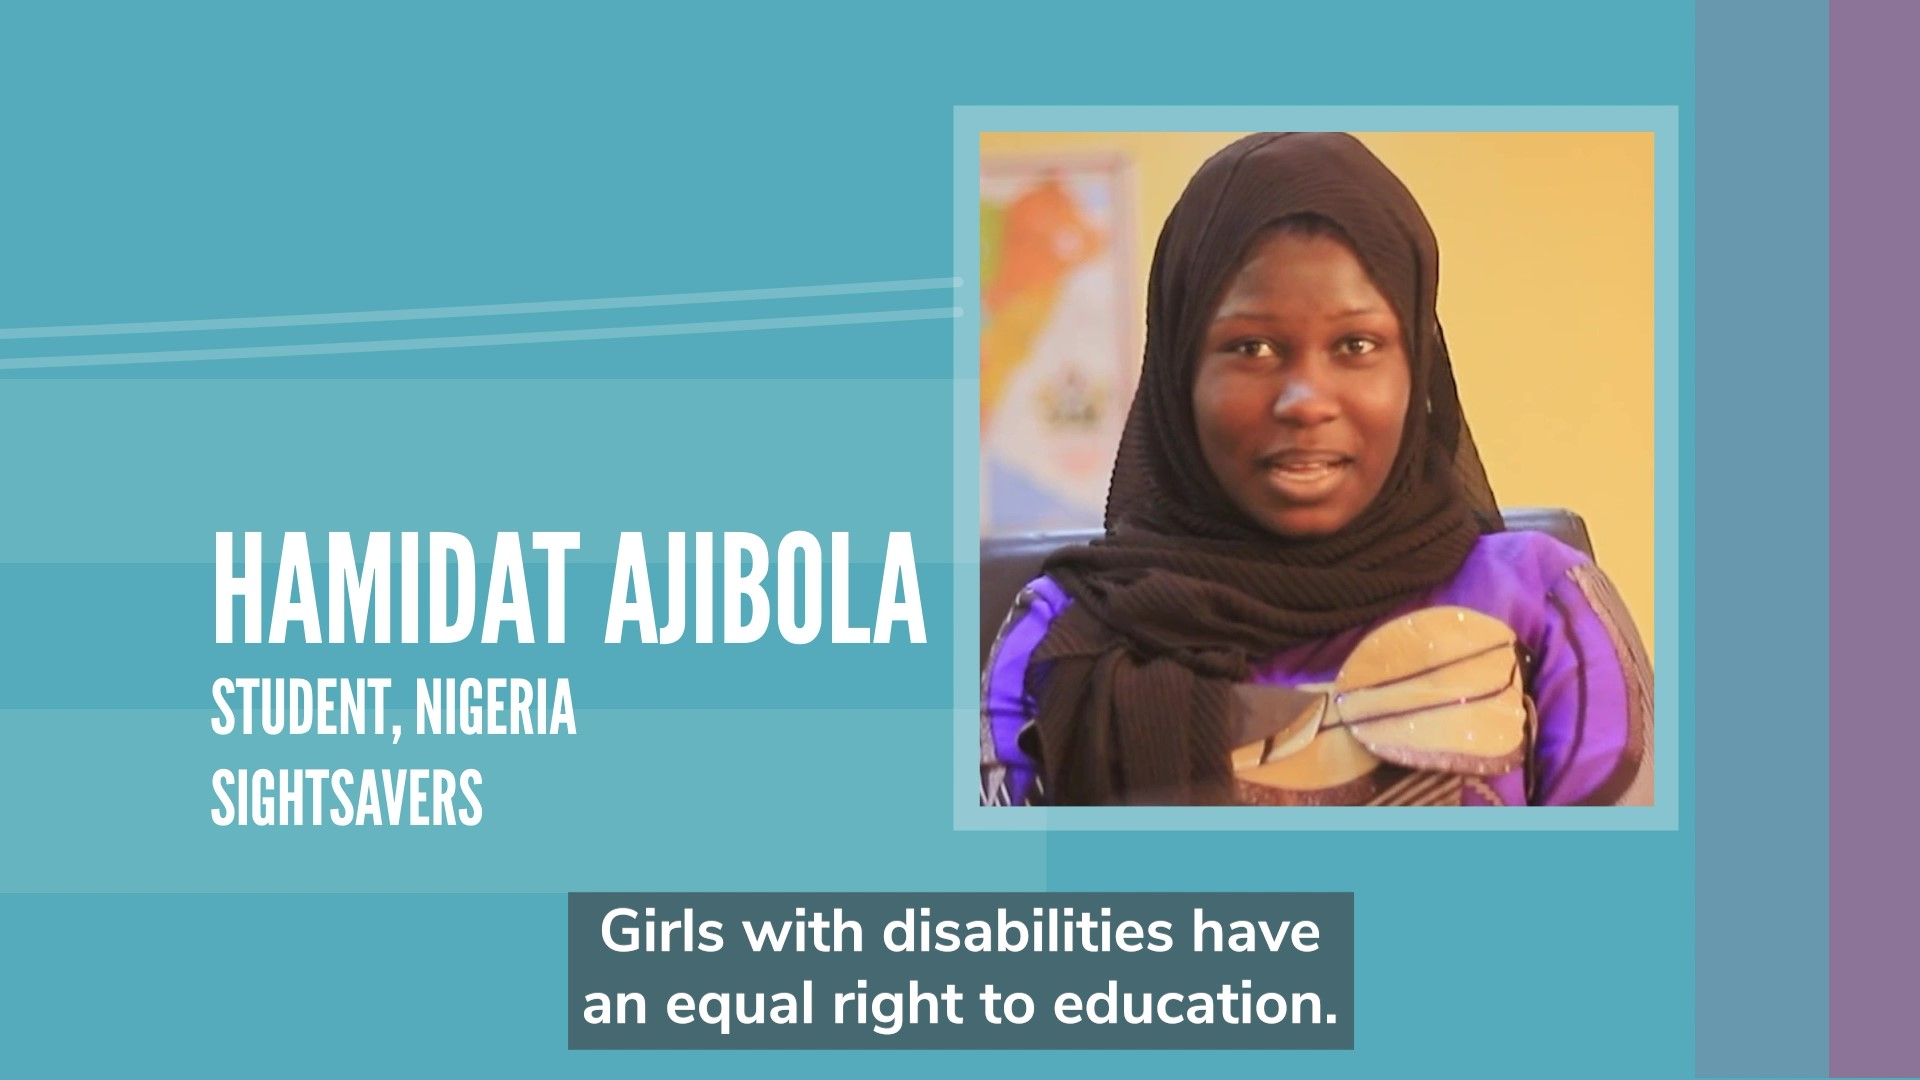 Girls with disabilities have an equal right to education